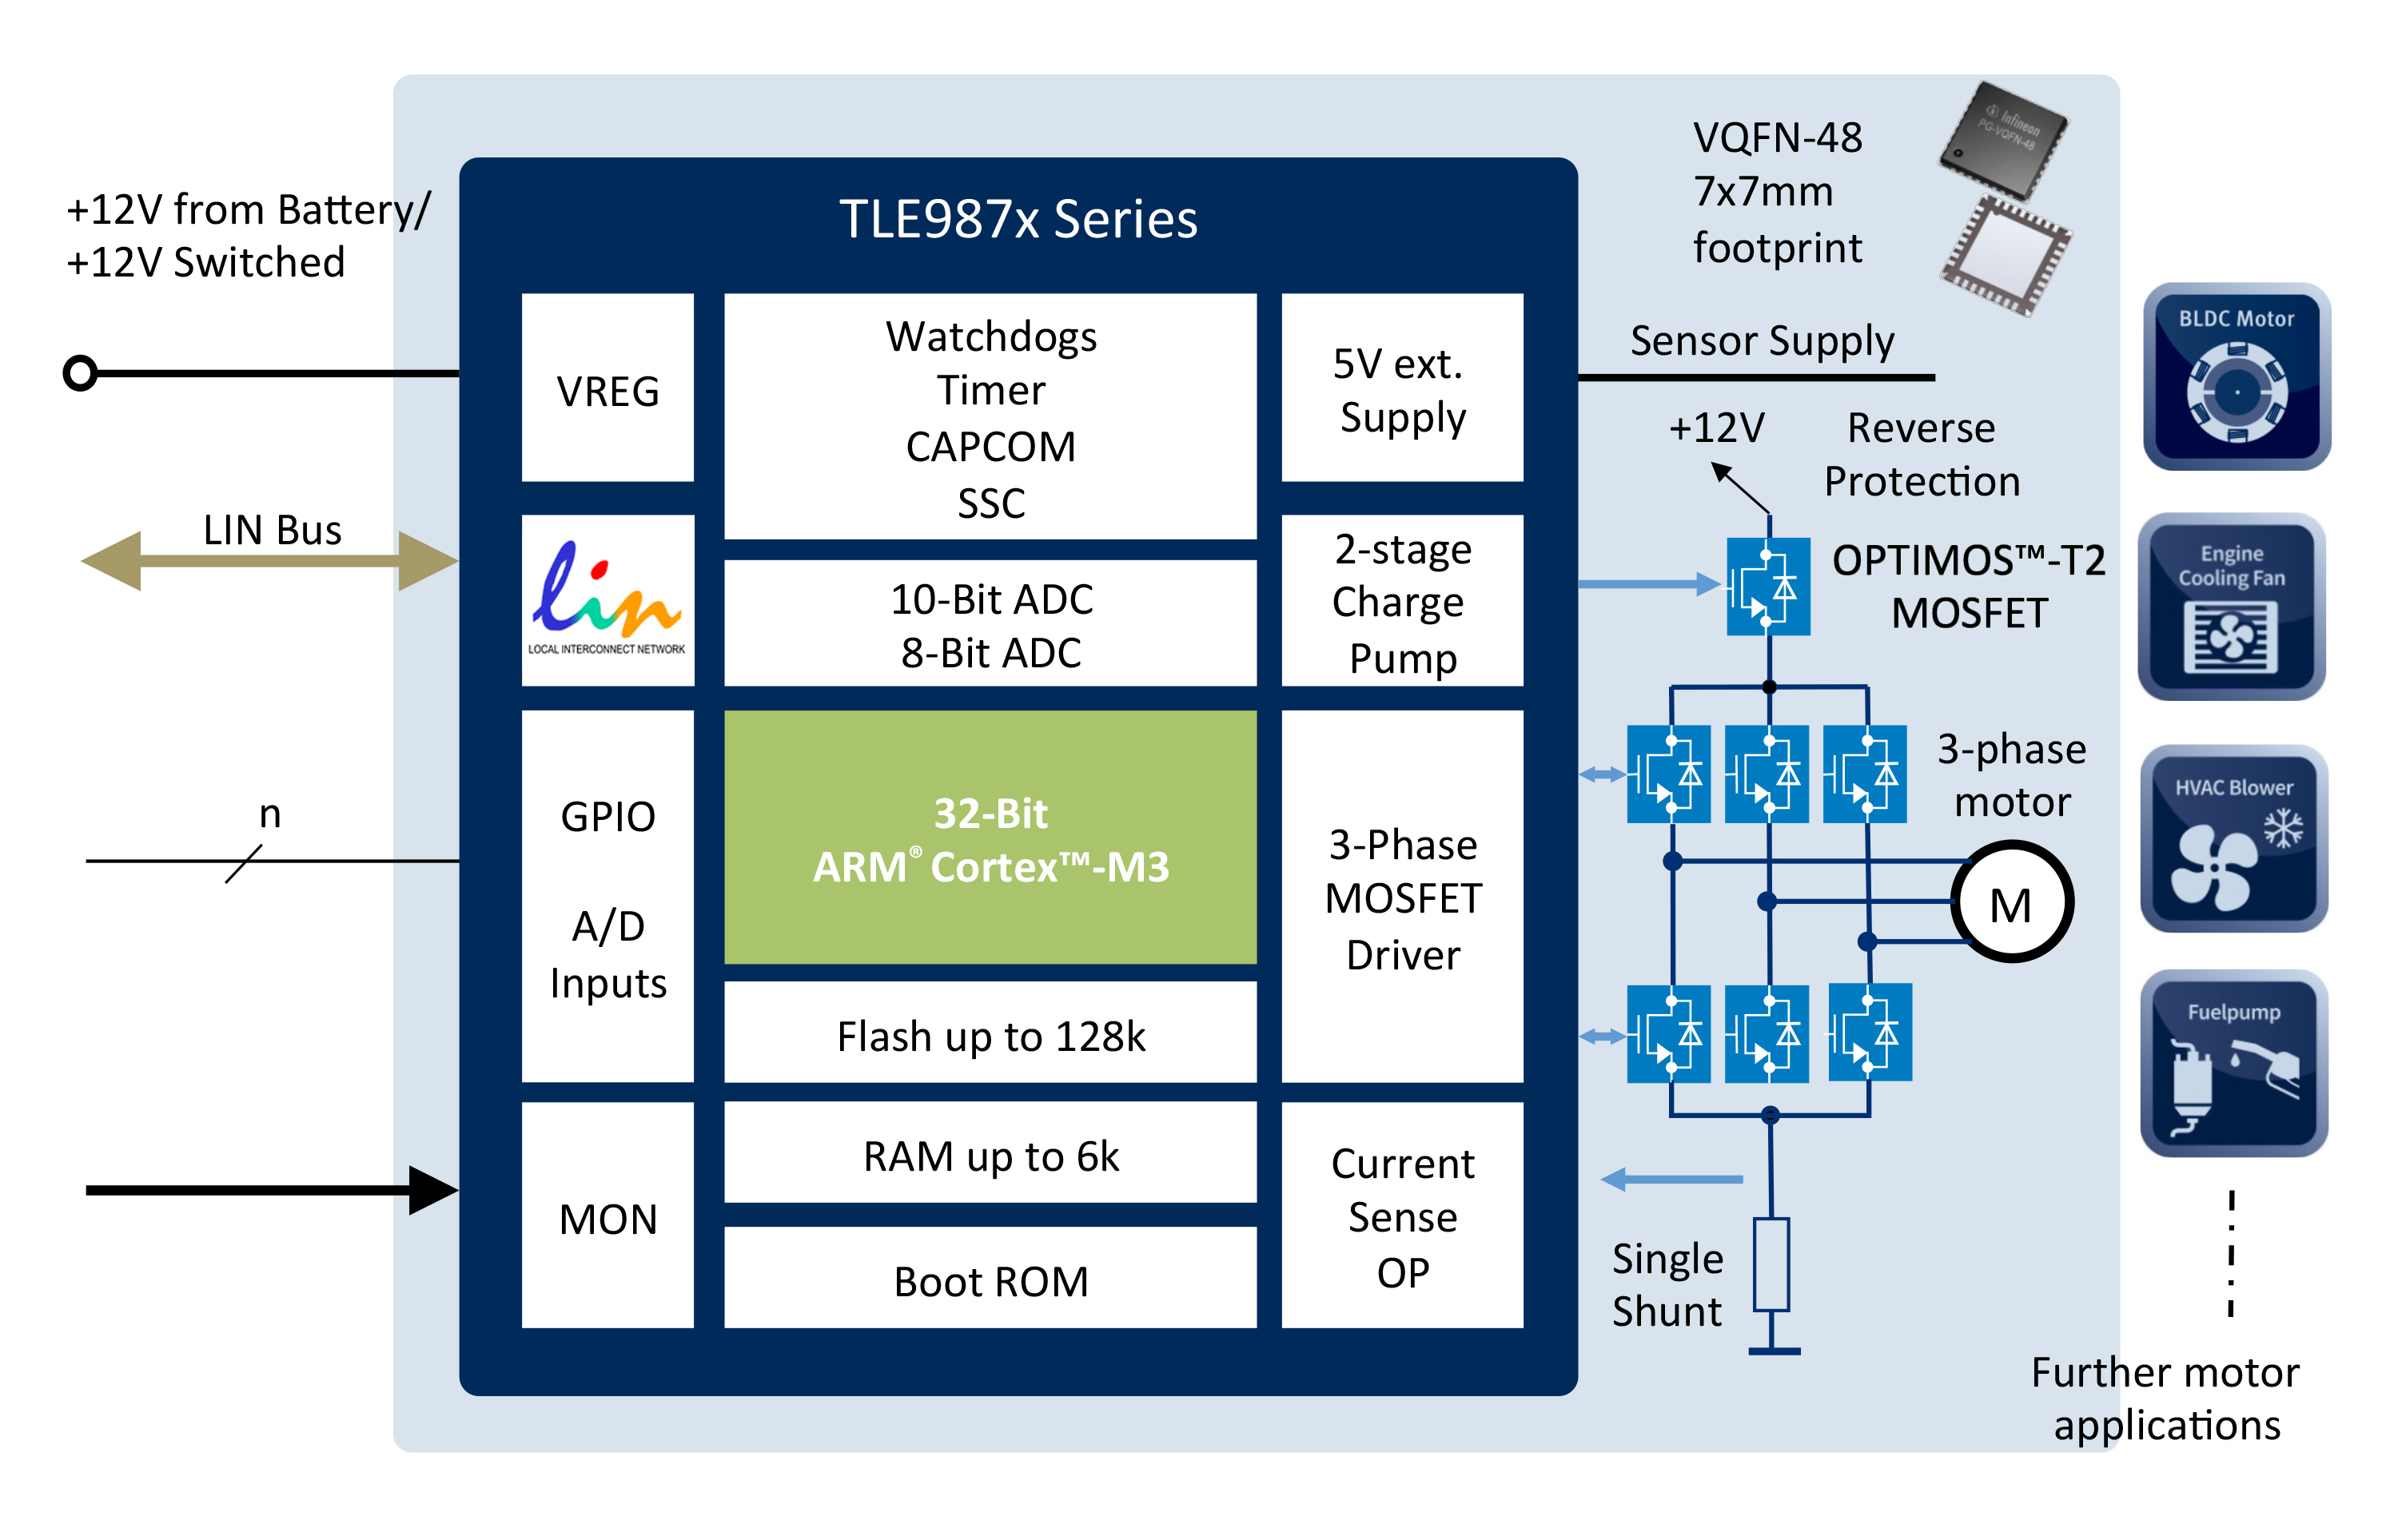 Intelligent Motor Control For Automotive Applications Eenews Microcontroller Power Supply Circuit Using Mosfet The Ics Integrate Complete Sense And Actuate Functionality Designs Different To Tle986x Series With Four Drivers